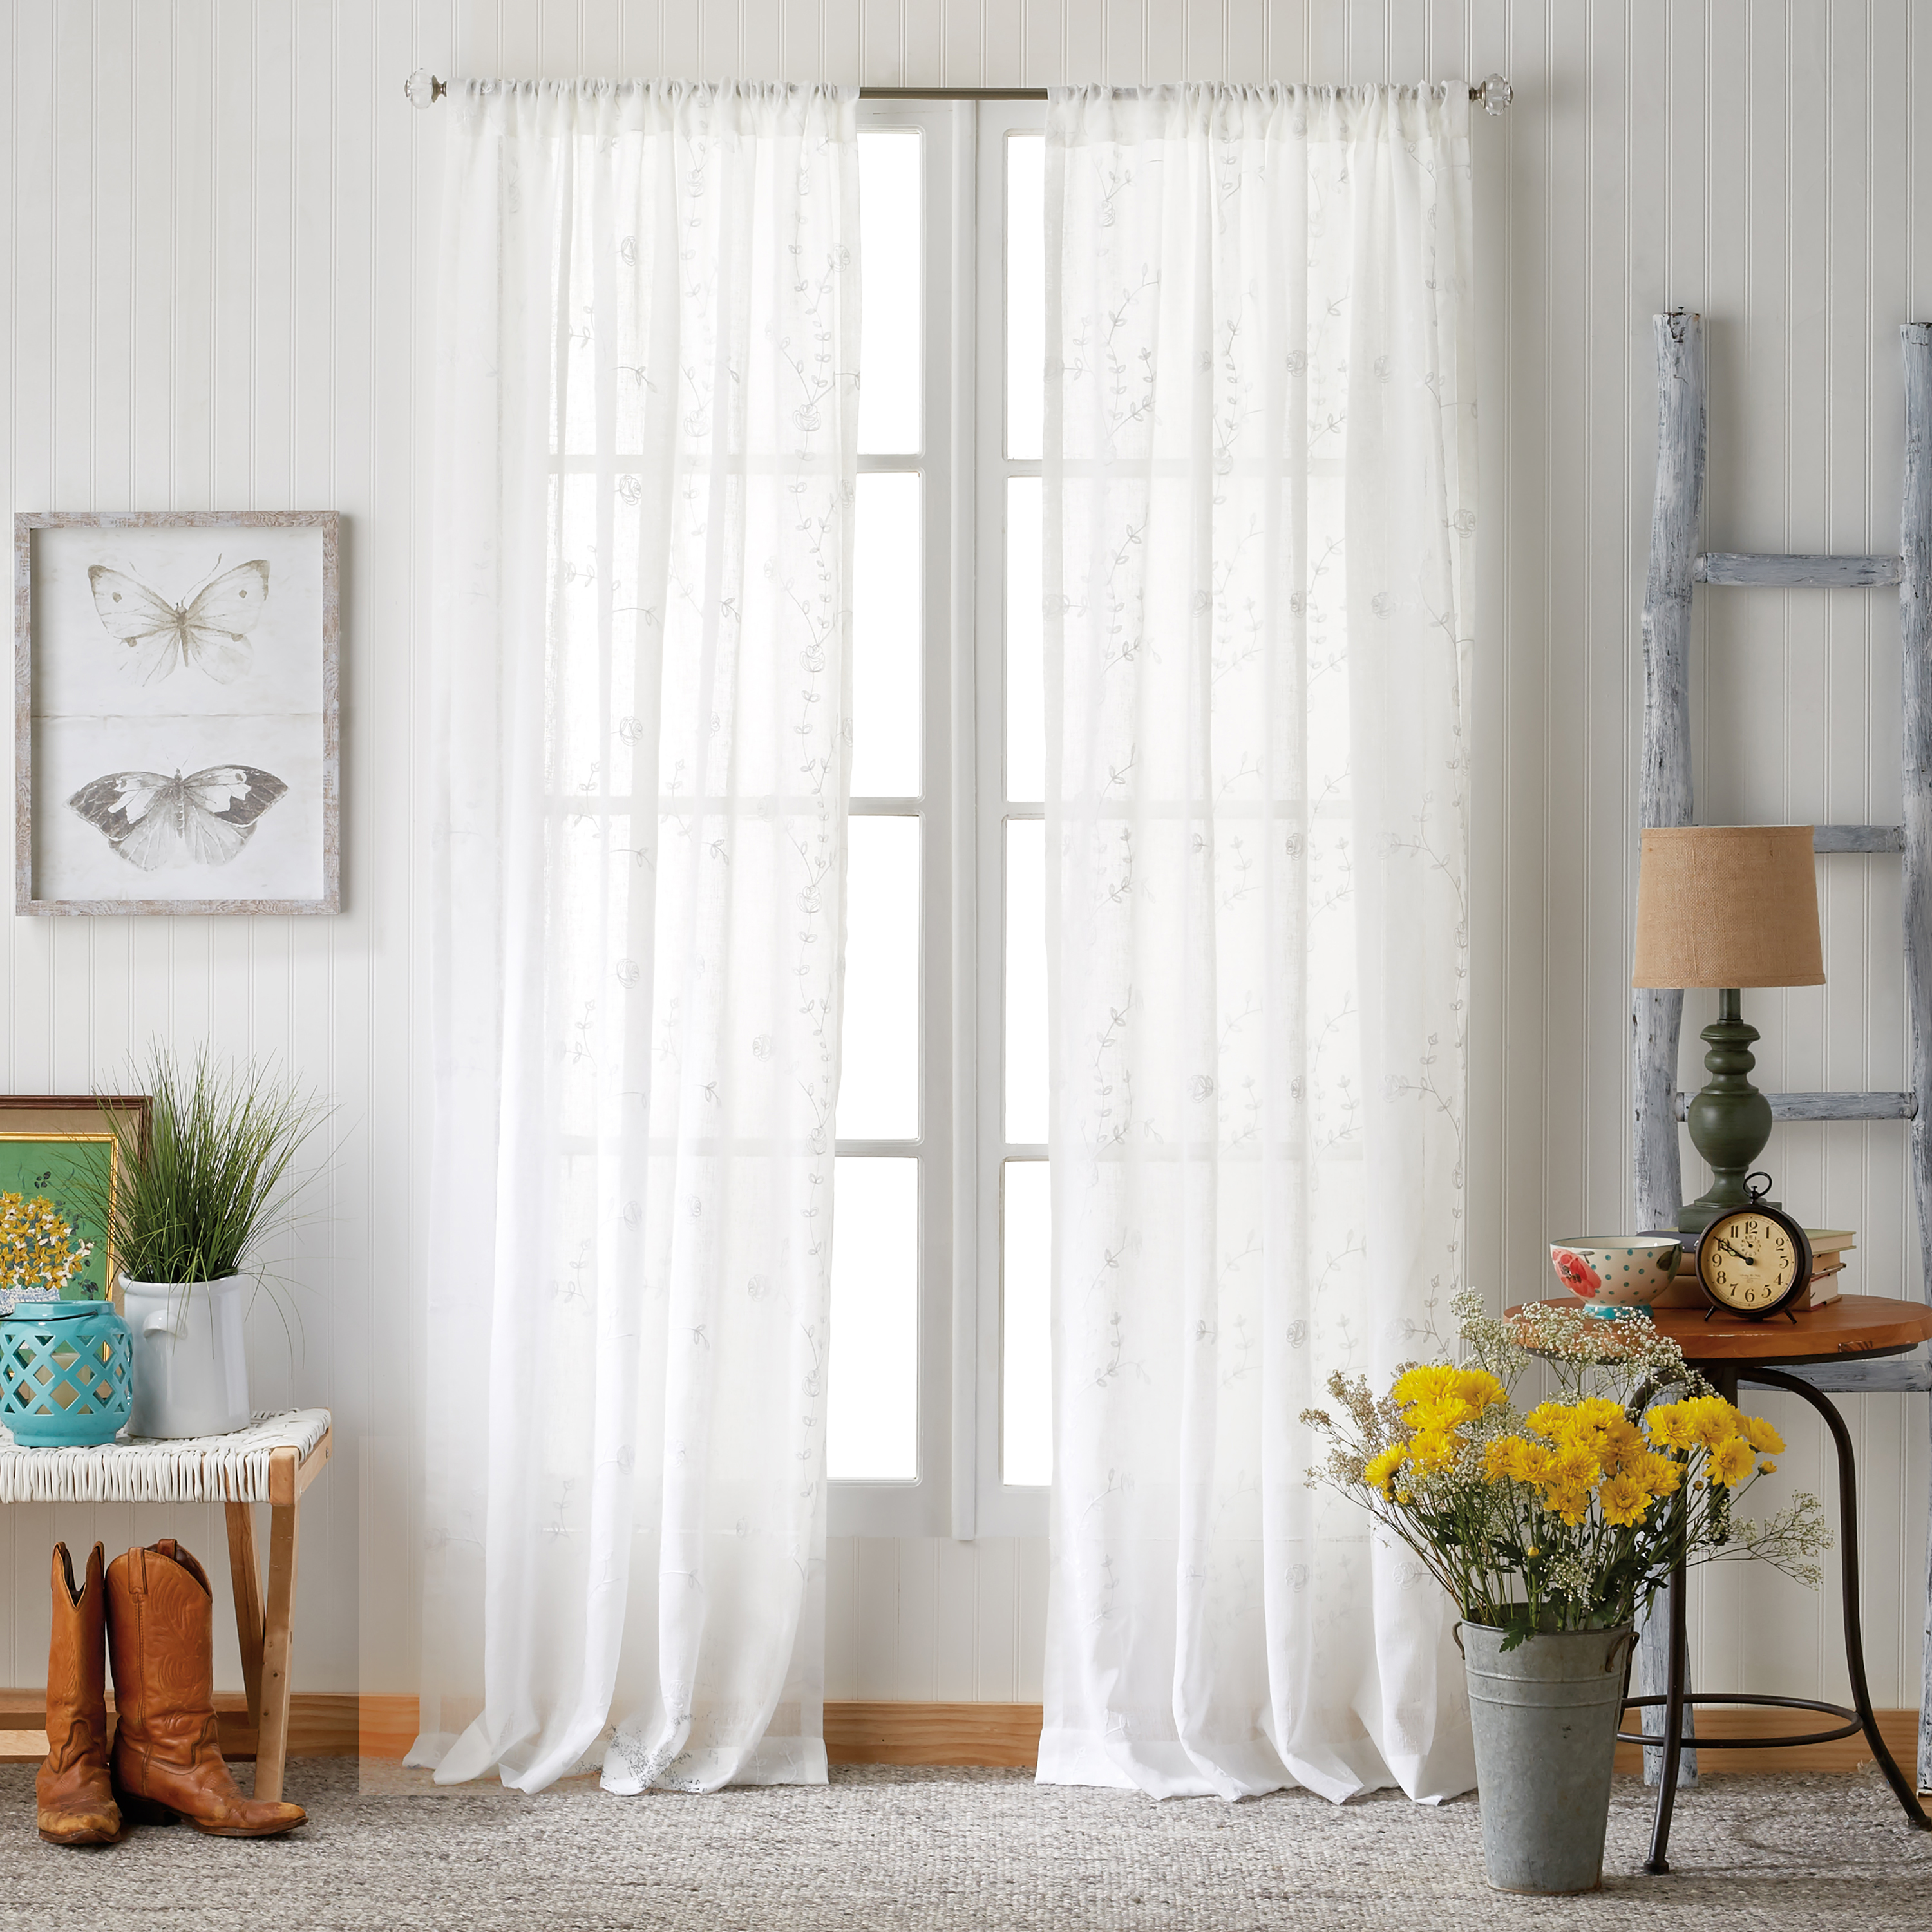 The Pioneer Woman Ravishing Rosebud Pole Top Curtain Panel